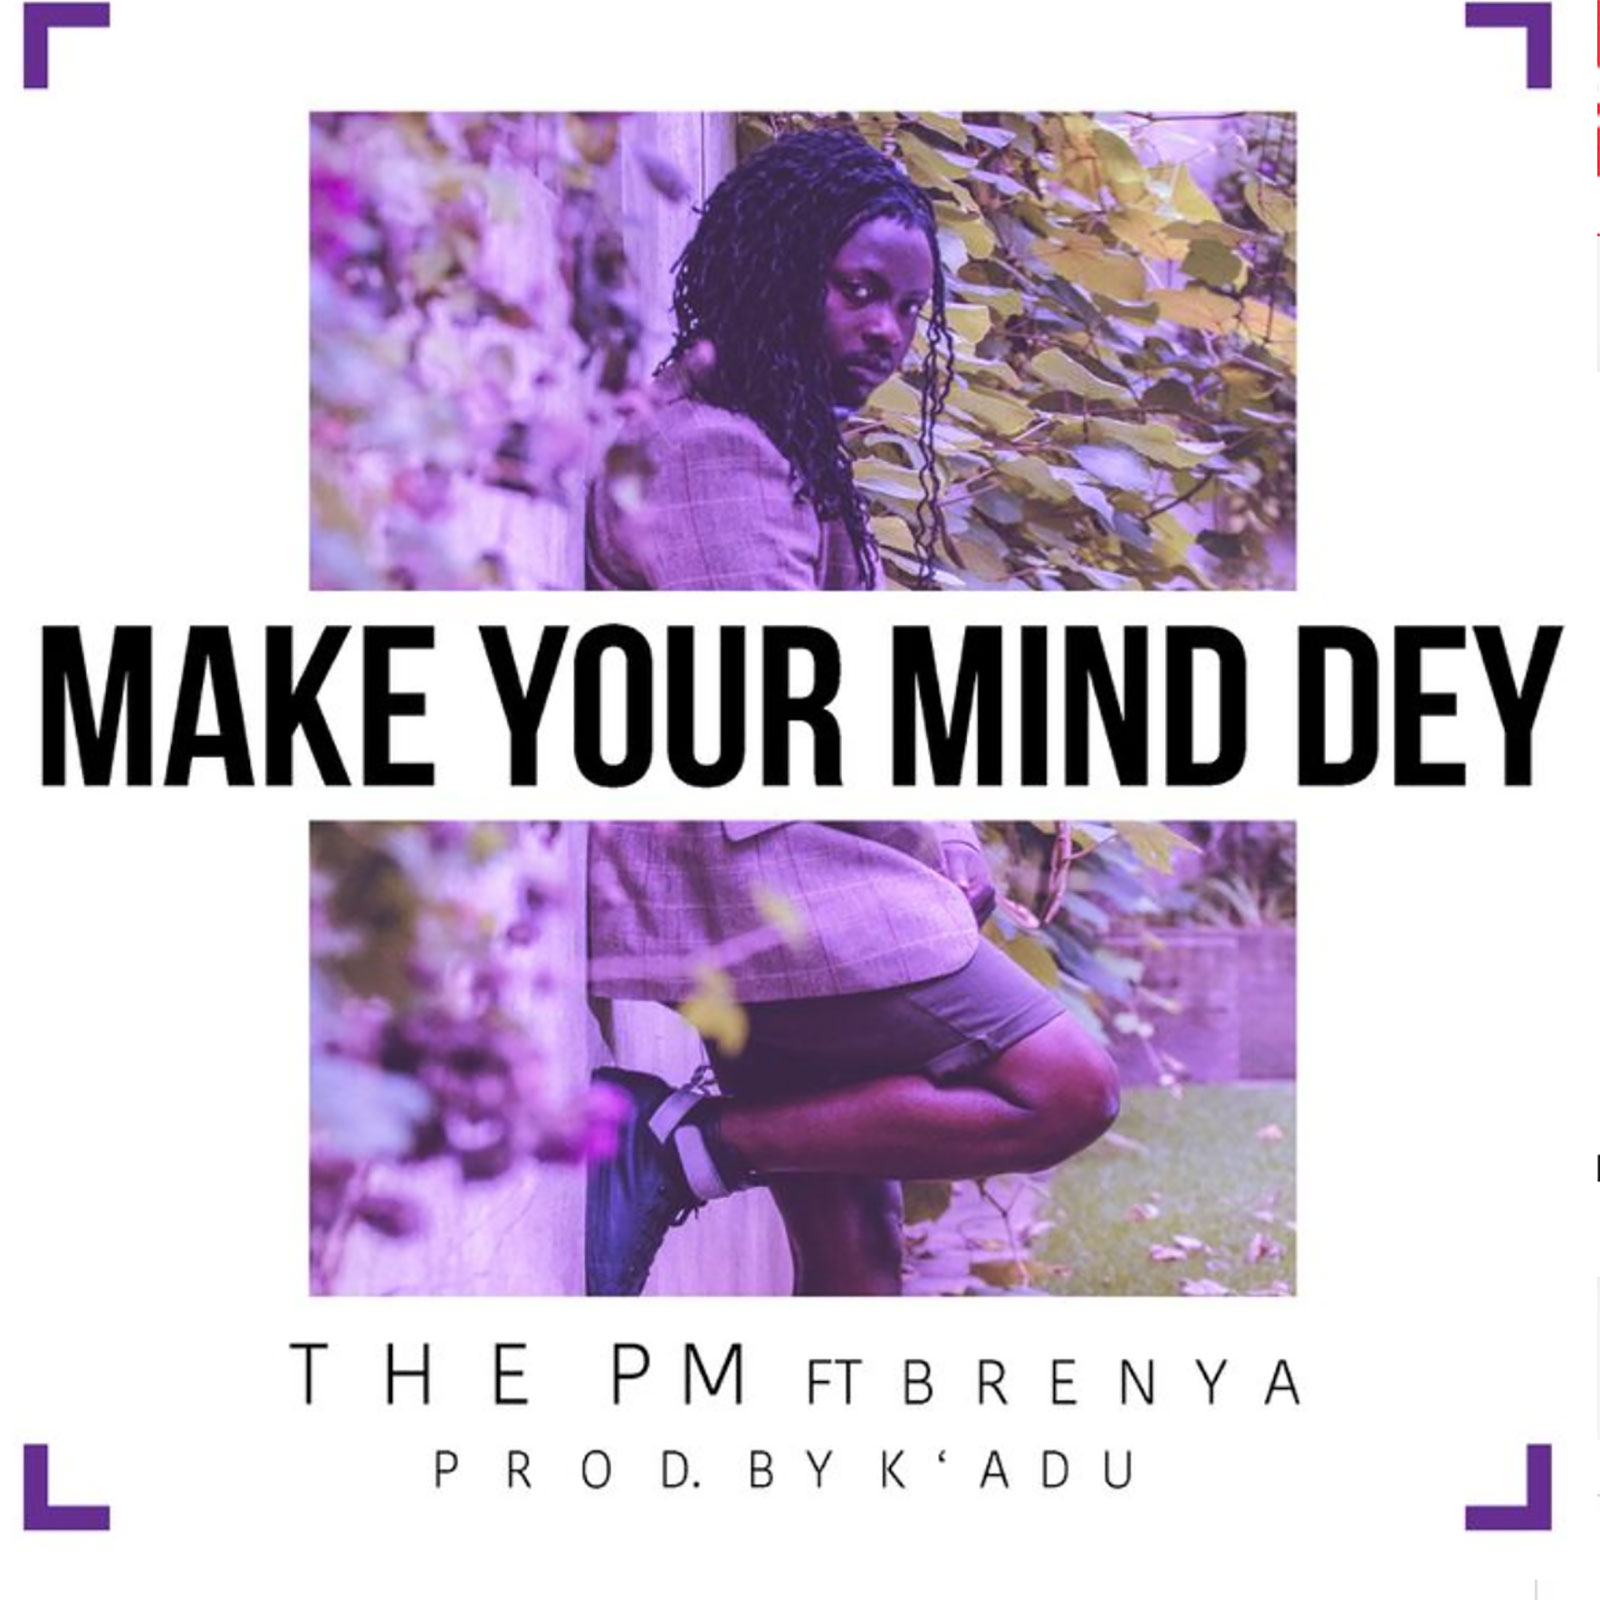 Make Your Mind Dey by The PM feat. Brenya